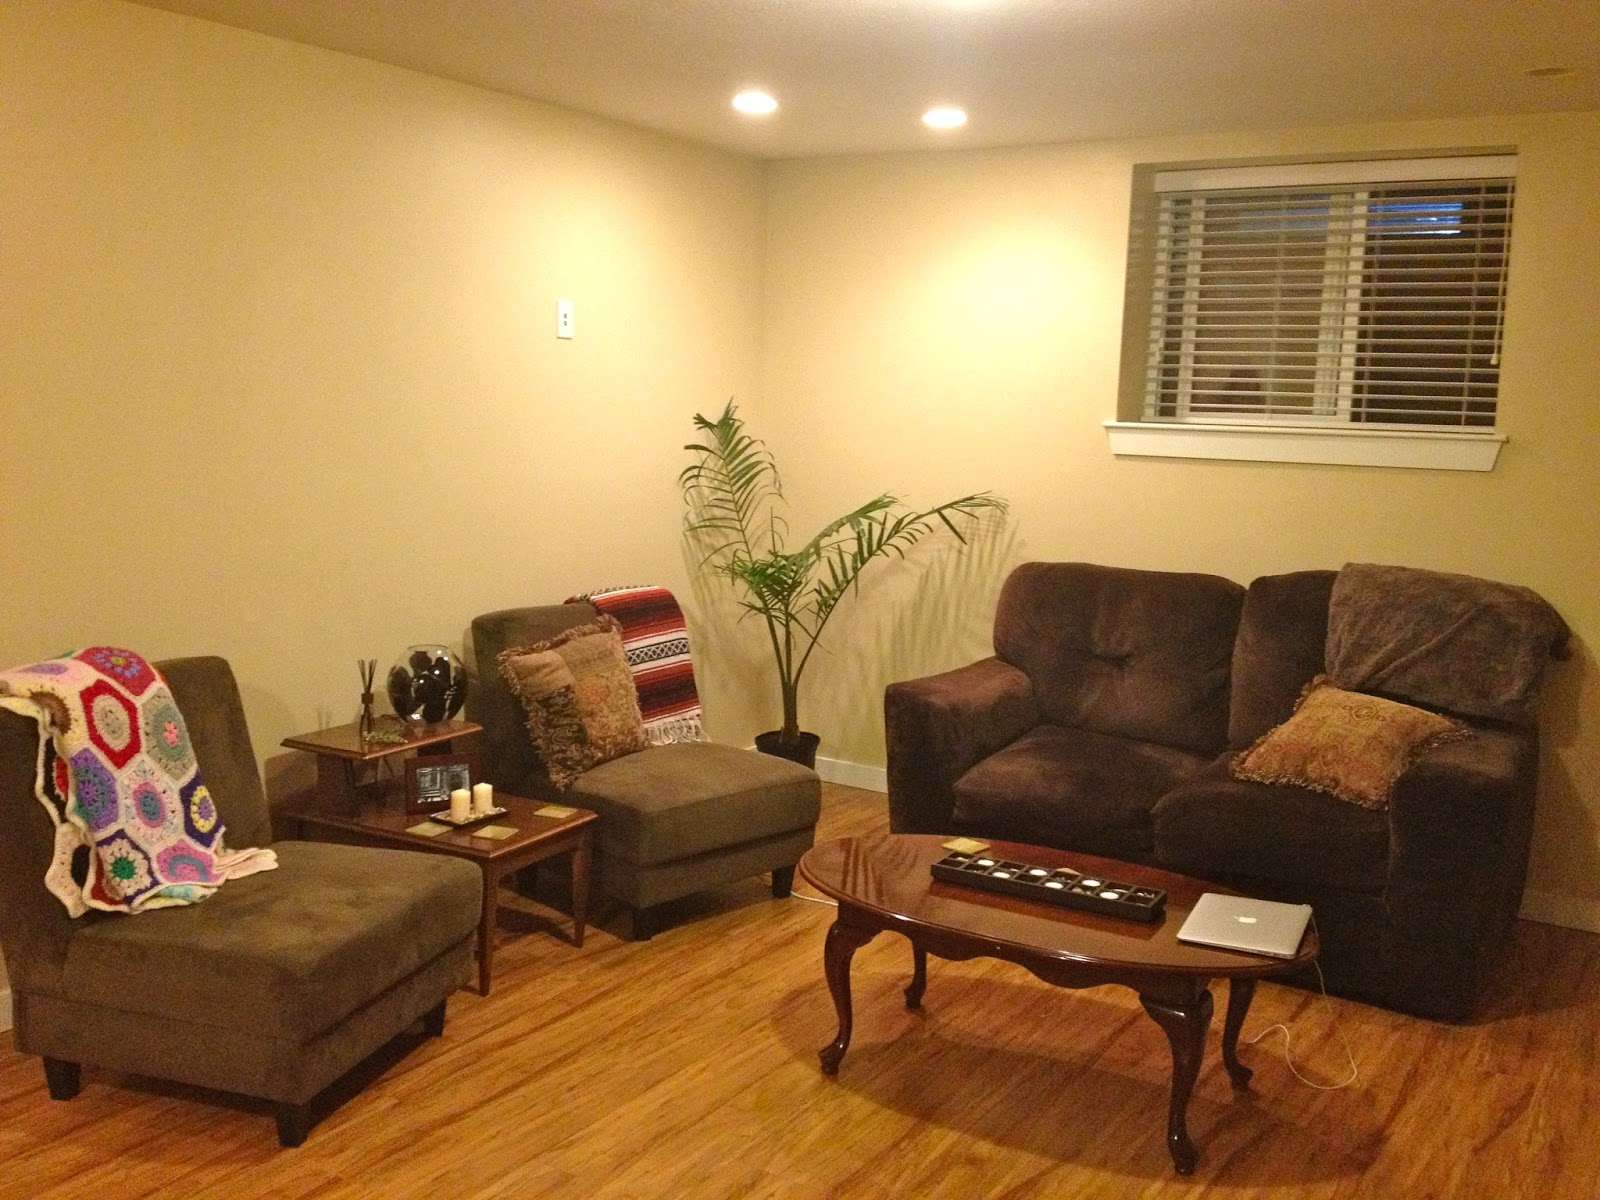 Kijiji Kitchener Furniture Bk